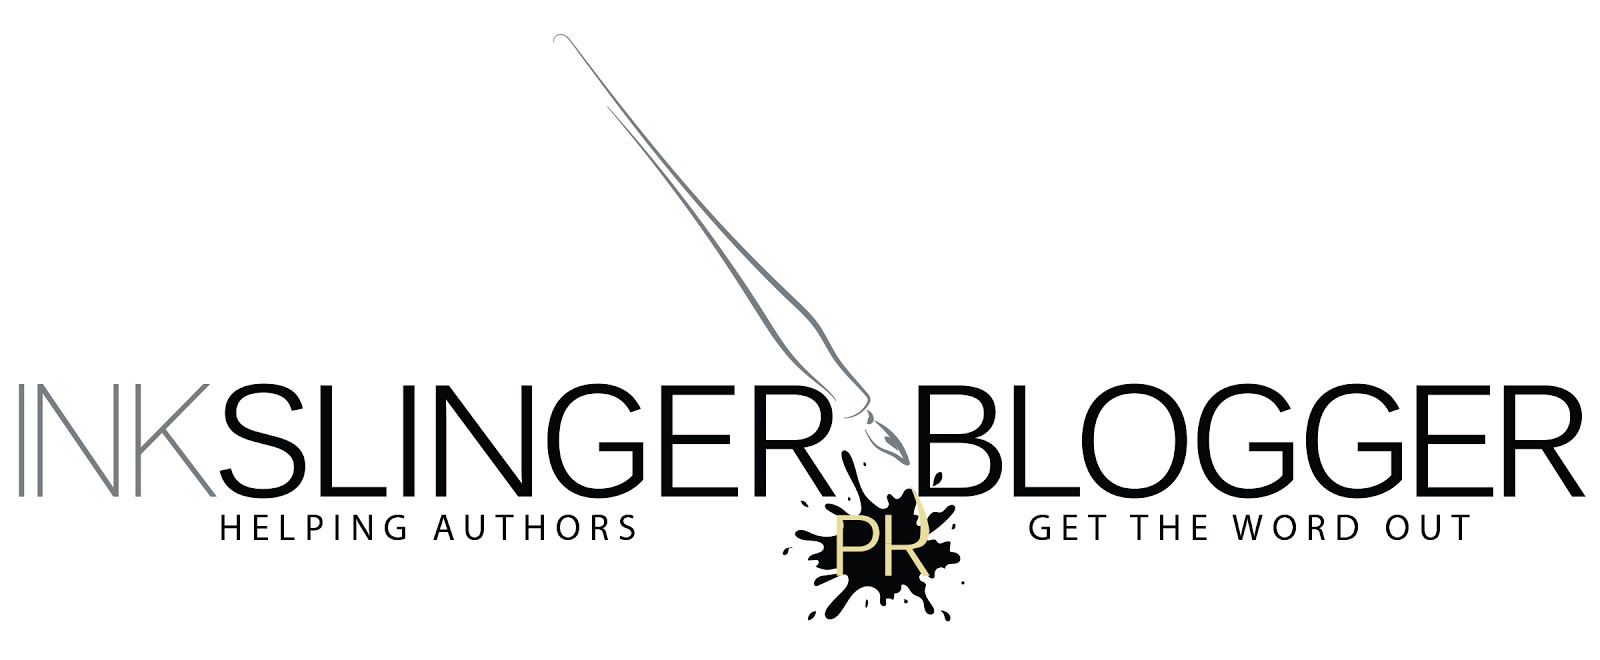 Ink Slinger Blogger